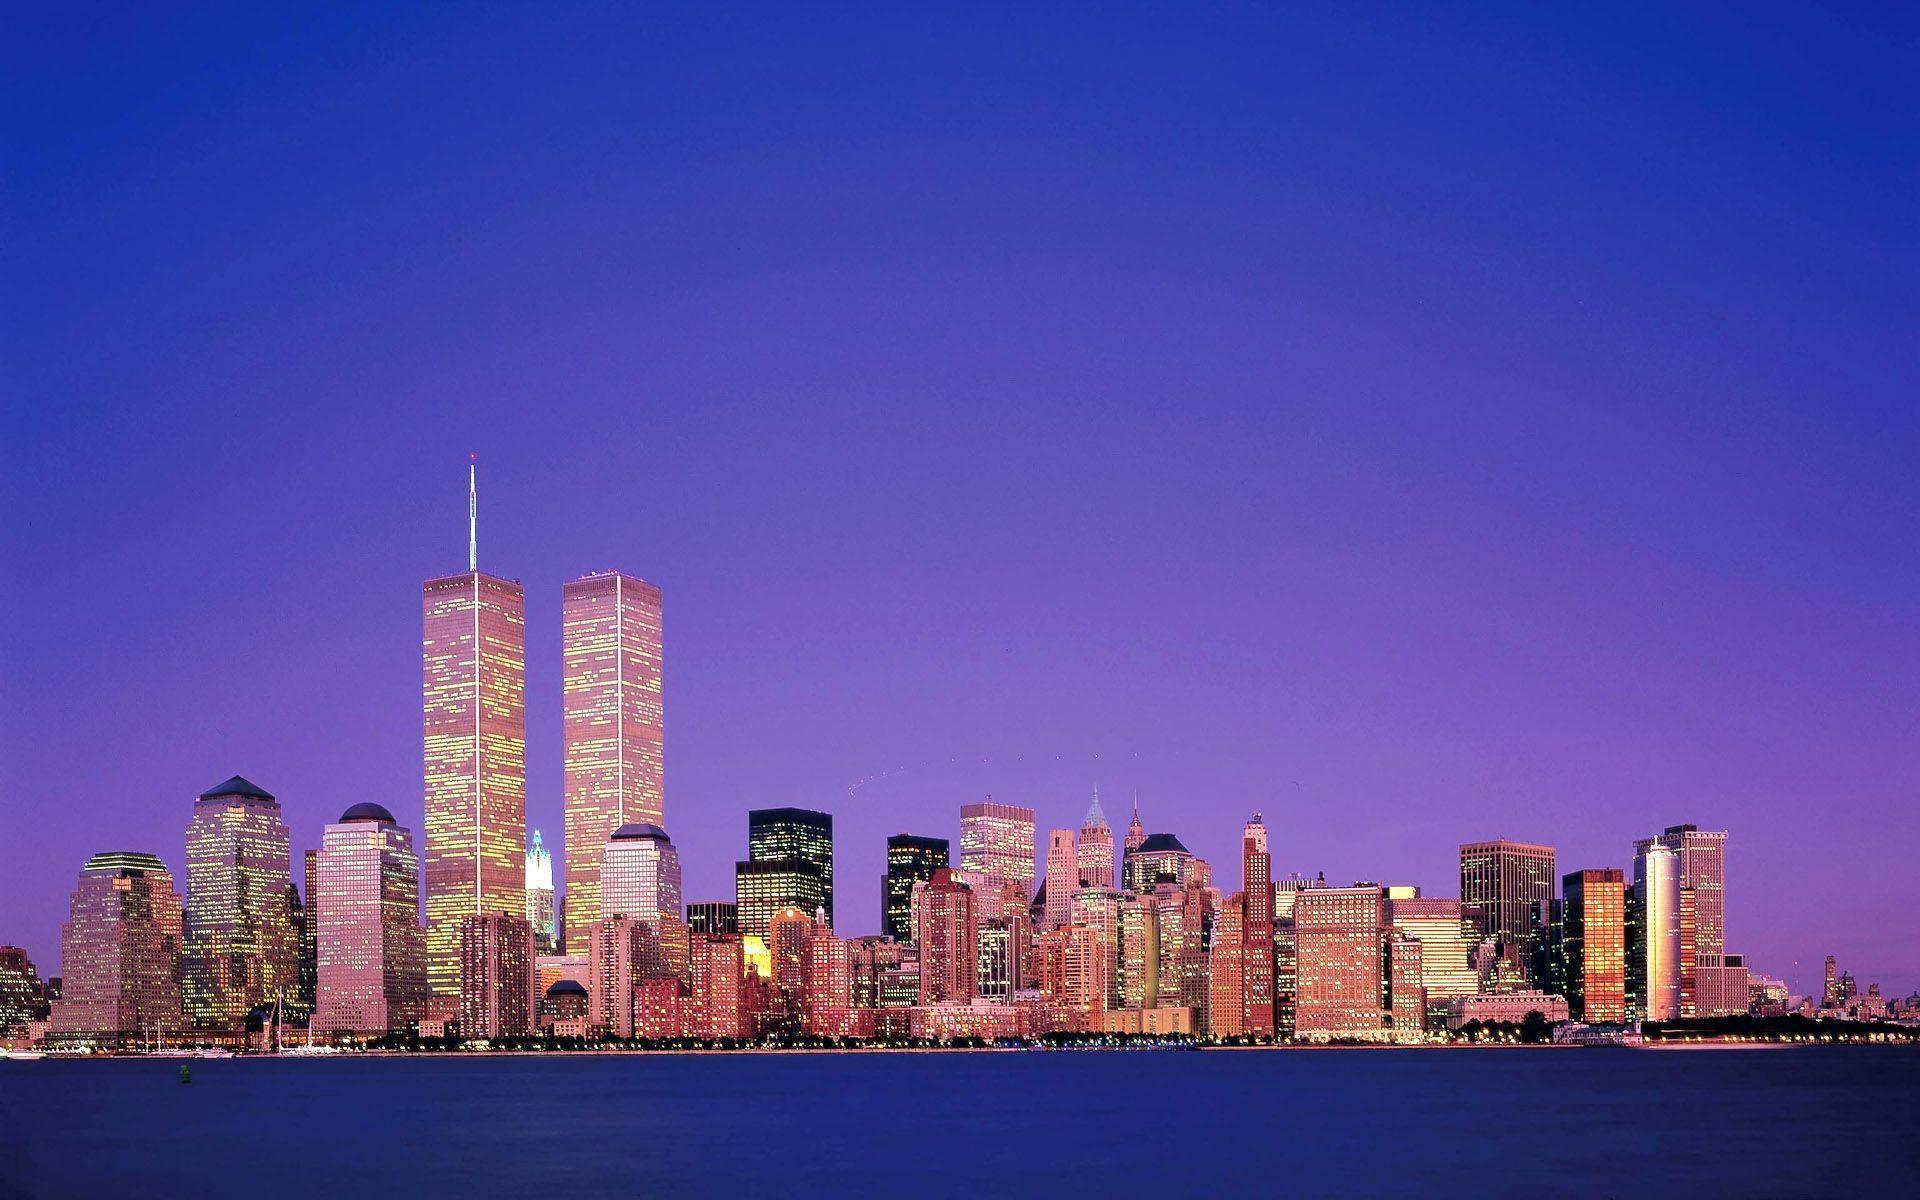 wtc wallpaper twin towers - photo #26